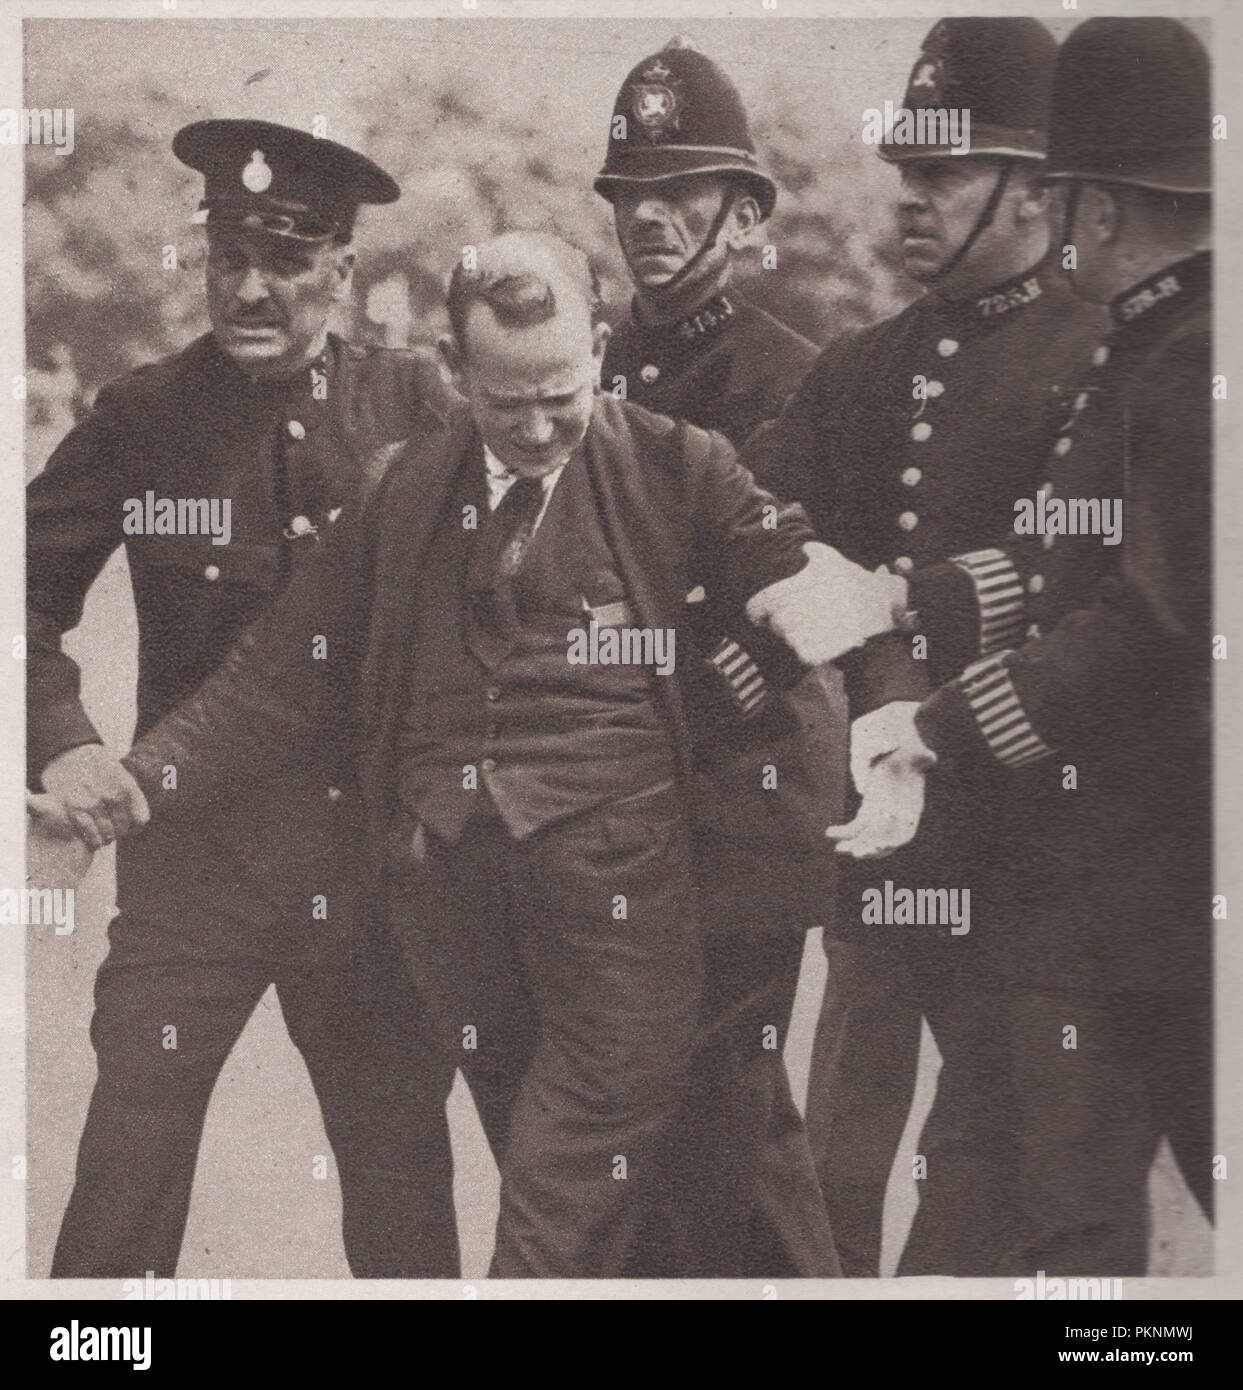 Irishman George Andrew Campbell McMahon also known as Jerome Bannigan being arrested by the police on Constitution Hill during the trooping the colour ceremony on 16 July 1936 where he drew a revolver and threw it at King Edward VIII as he rode past.  He was sentenced to 12 months imprisonment and hard labor on 14 September 1936.  He said that he was protesting the failure of authorities to respond to McMahon's reports of a plot to kill the king. He also claimed to have been working with the Security Services. - Stock Image